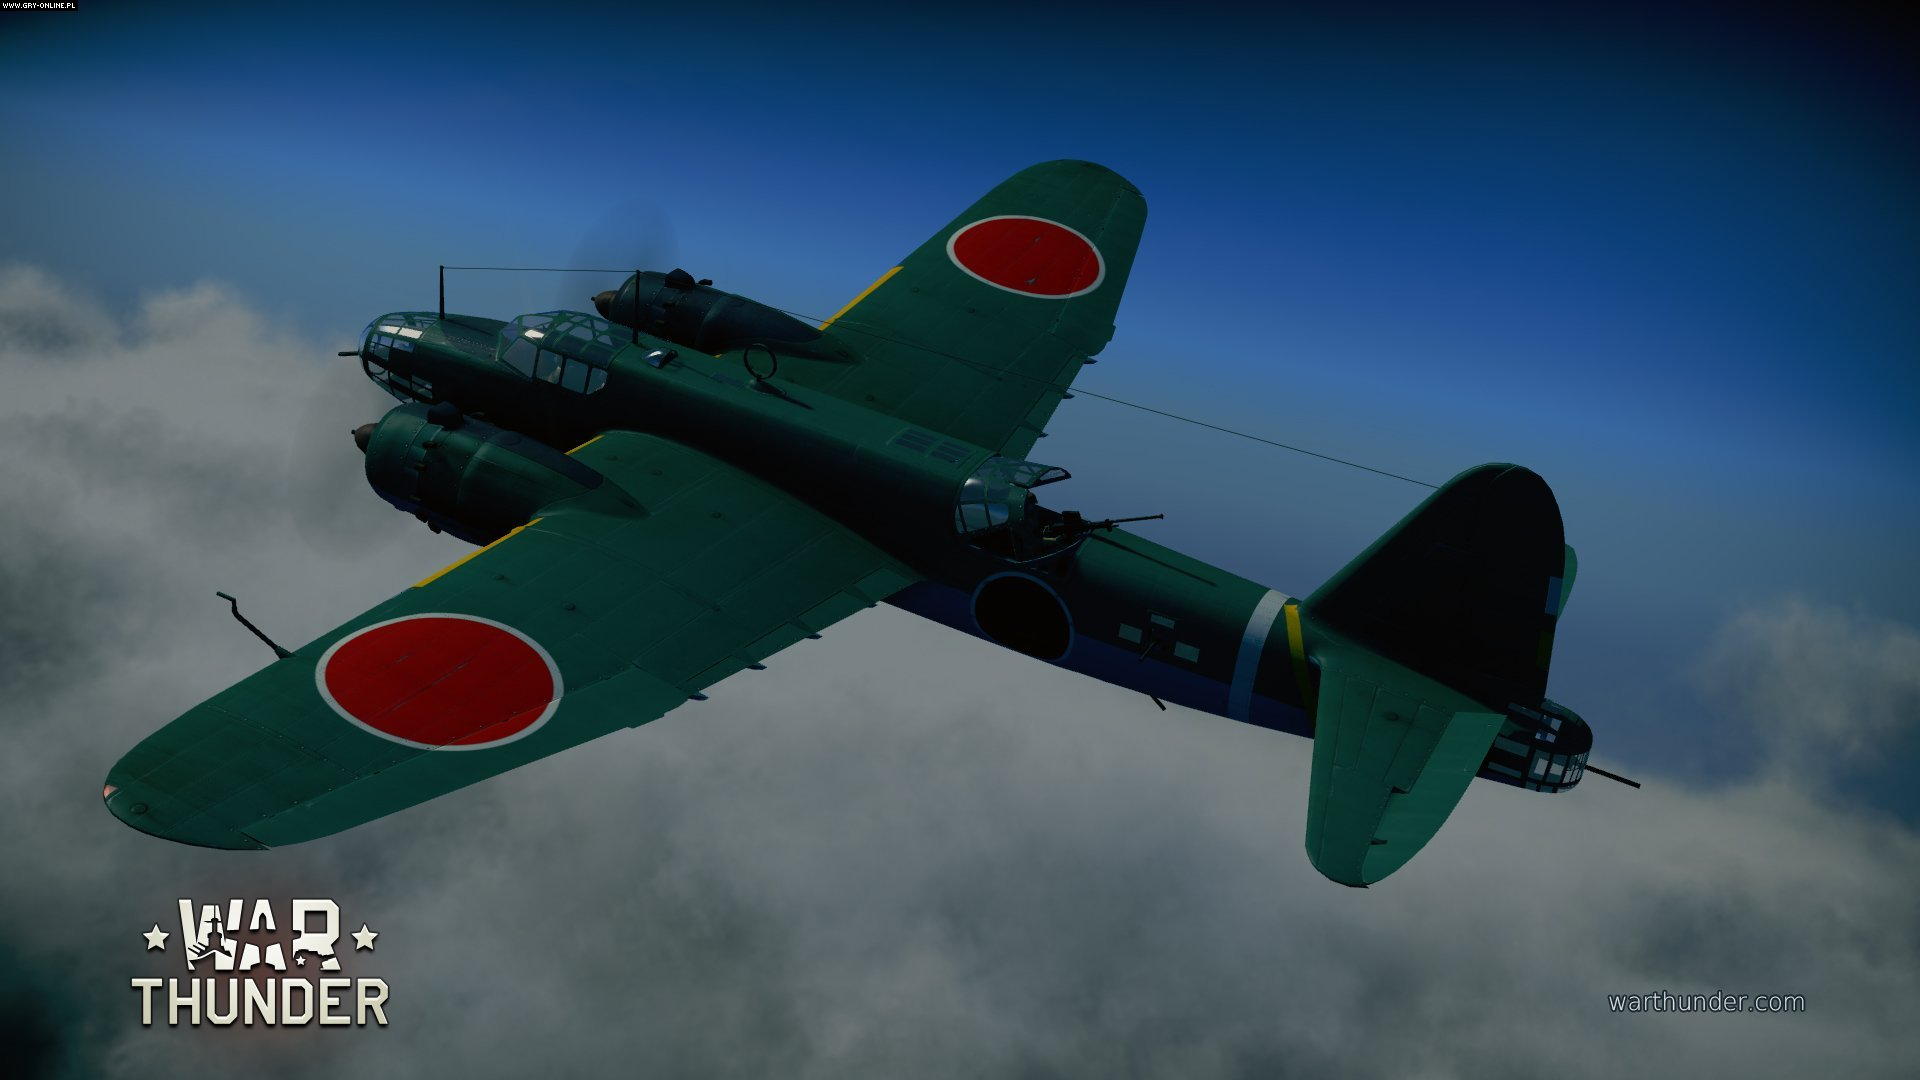 War Thunder PC, PS4, XONE Gry Screen 213/476, Gaijin Entertainment